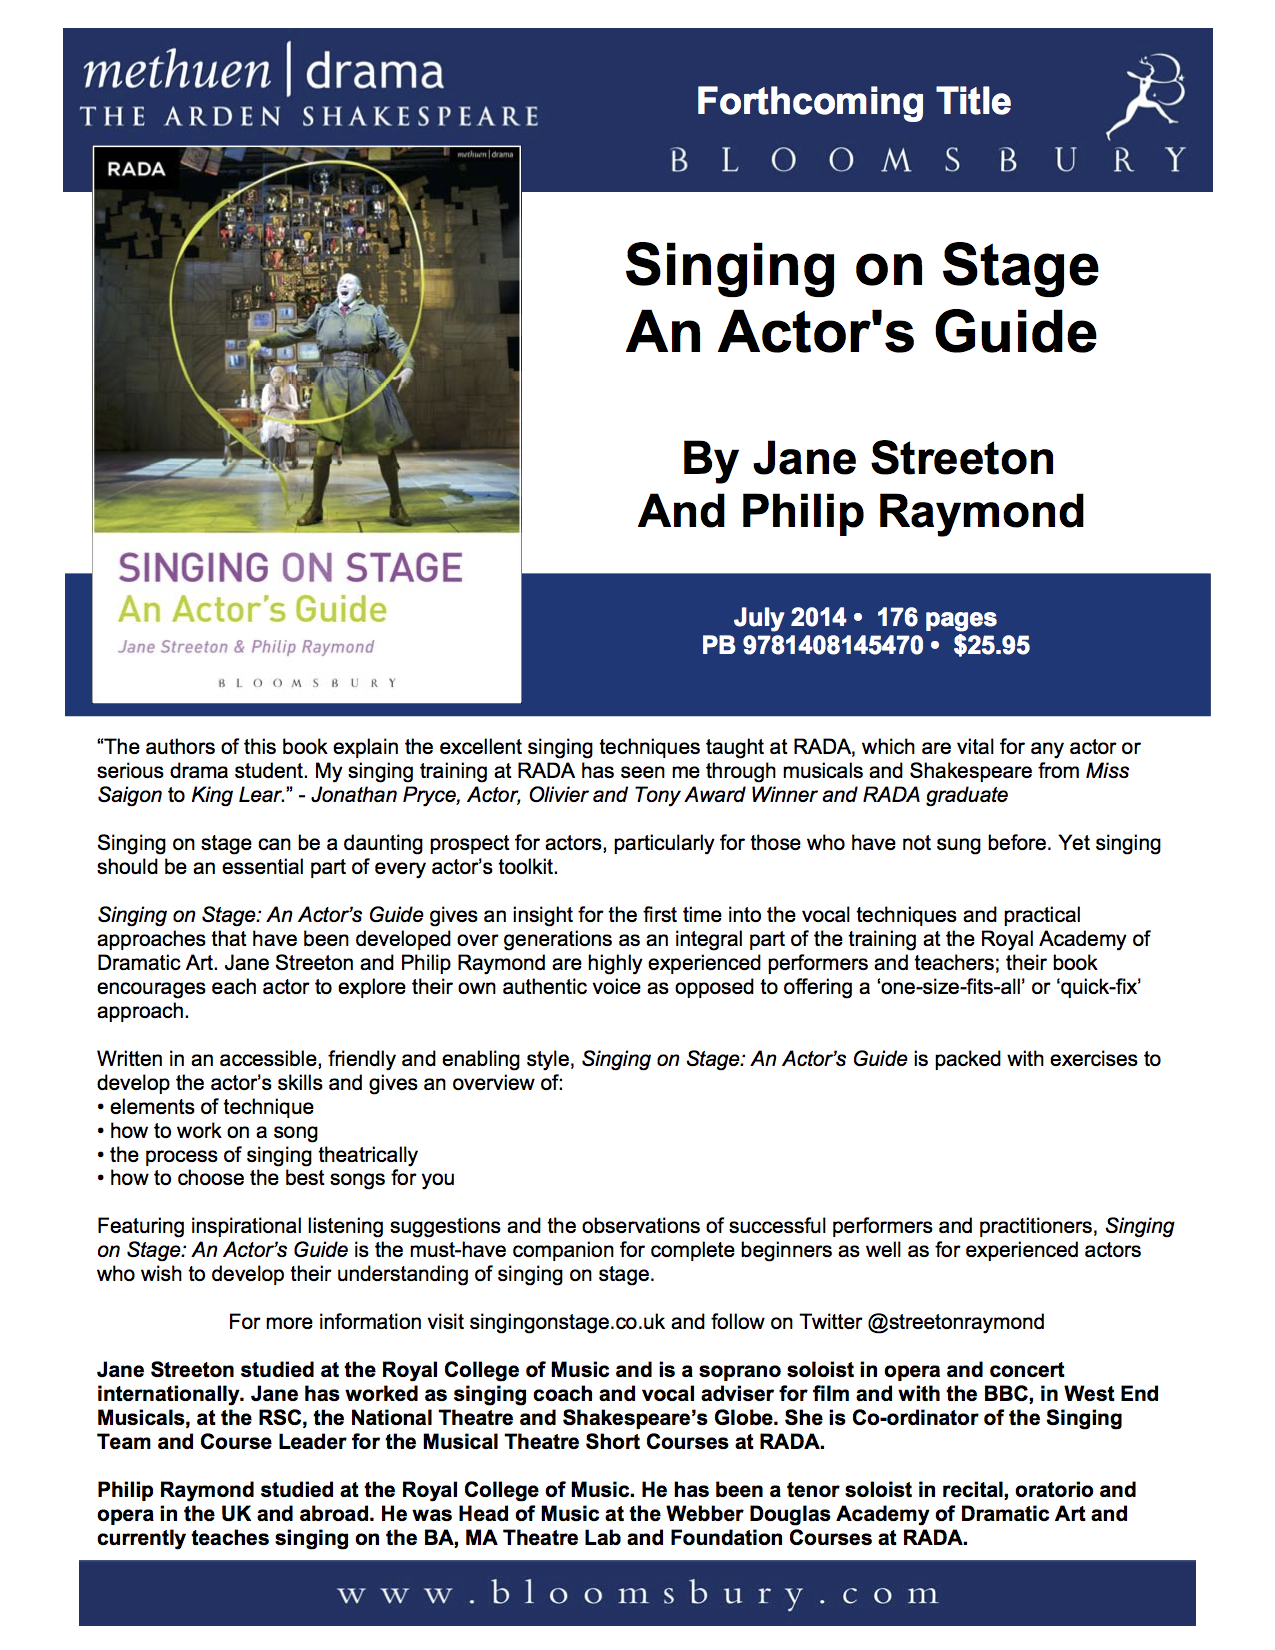 Singing on Stage An Actor's Guide with Website